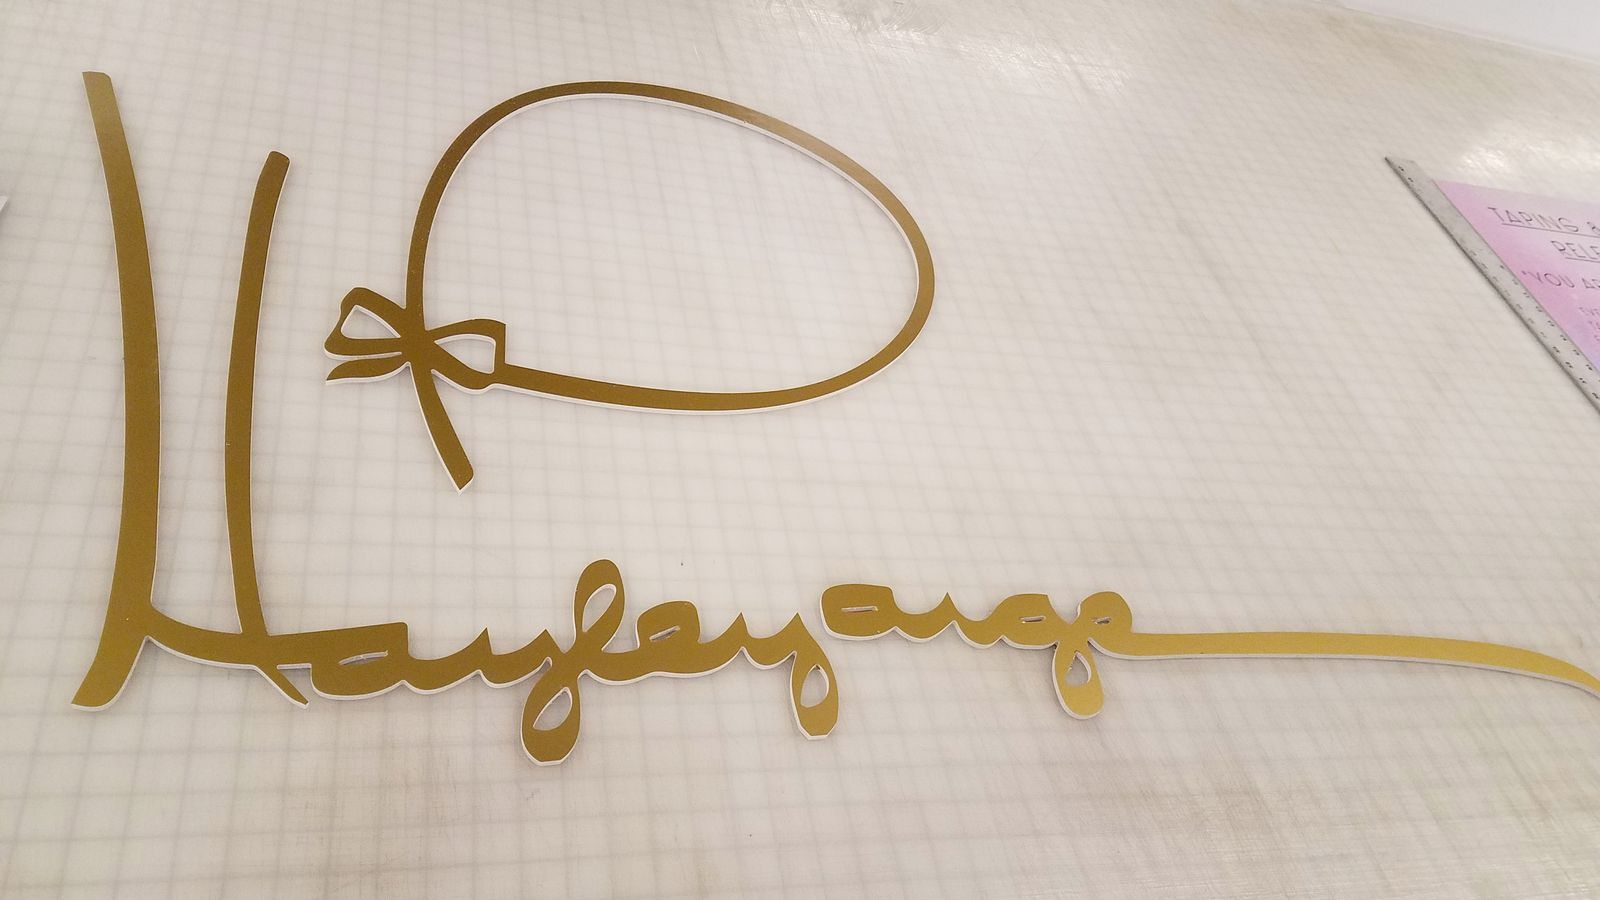 custom 3d foam letters and ribbon in golden color made of foam board for interior design